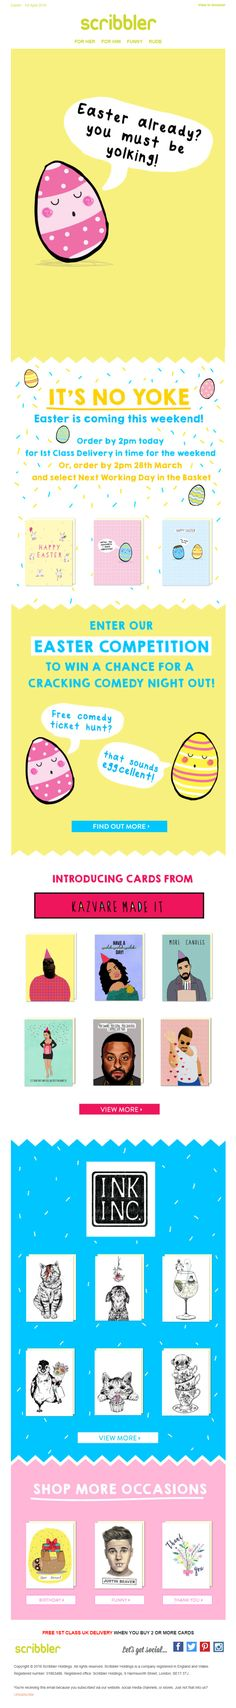 Easter email from whistlefish emailmarketing email marketing easter email from whistlefish emailmarketing email marketing easter gifts retail product recommendations offers ideas negle Gallery